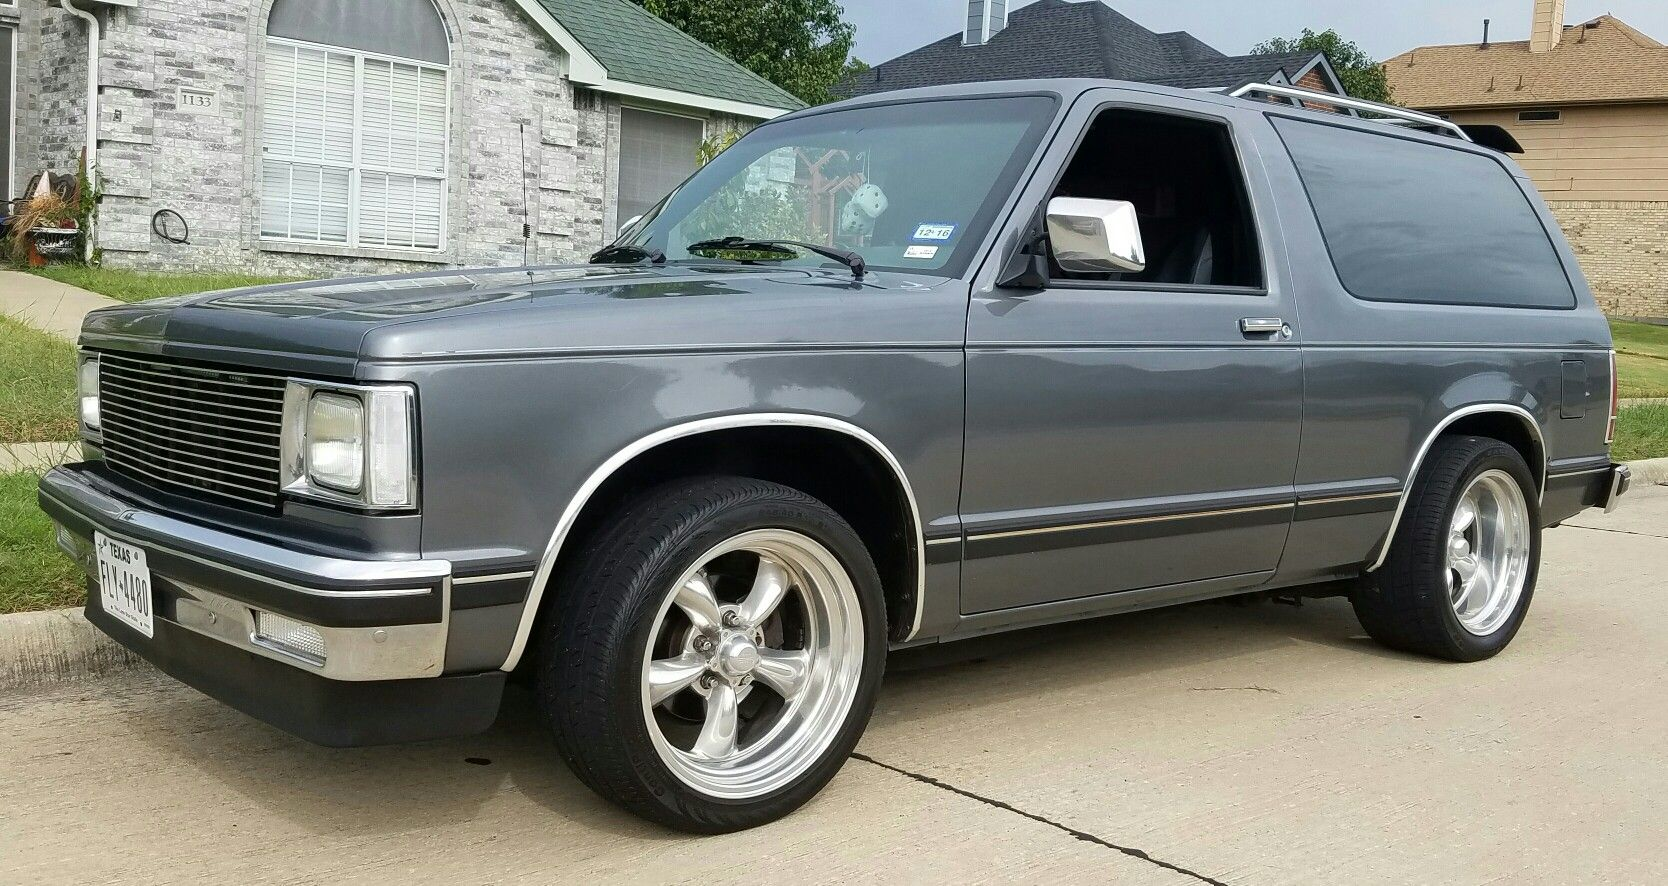 small resolution of discover ideas about s10 truck